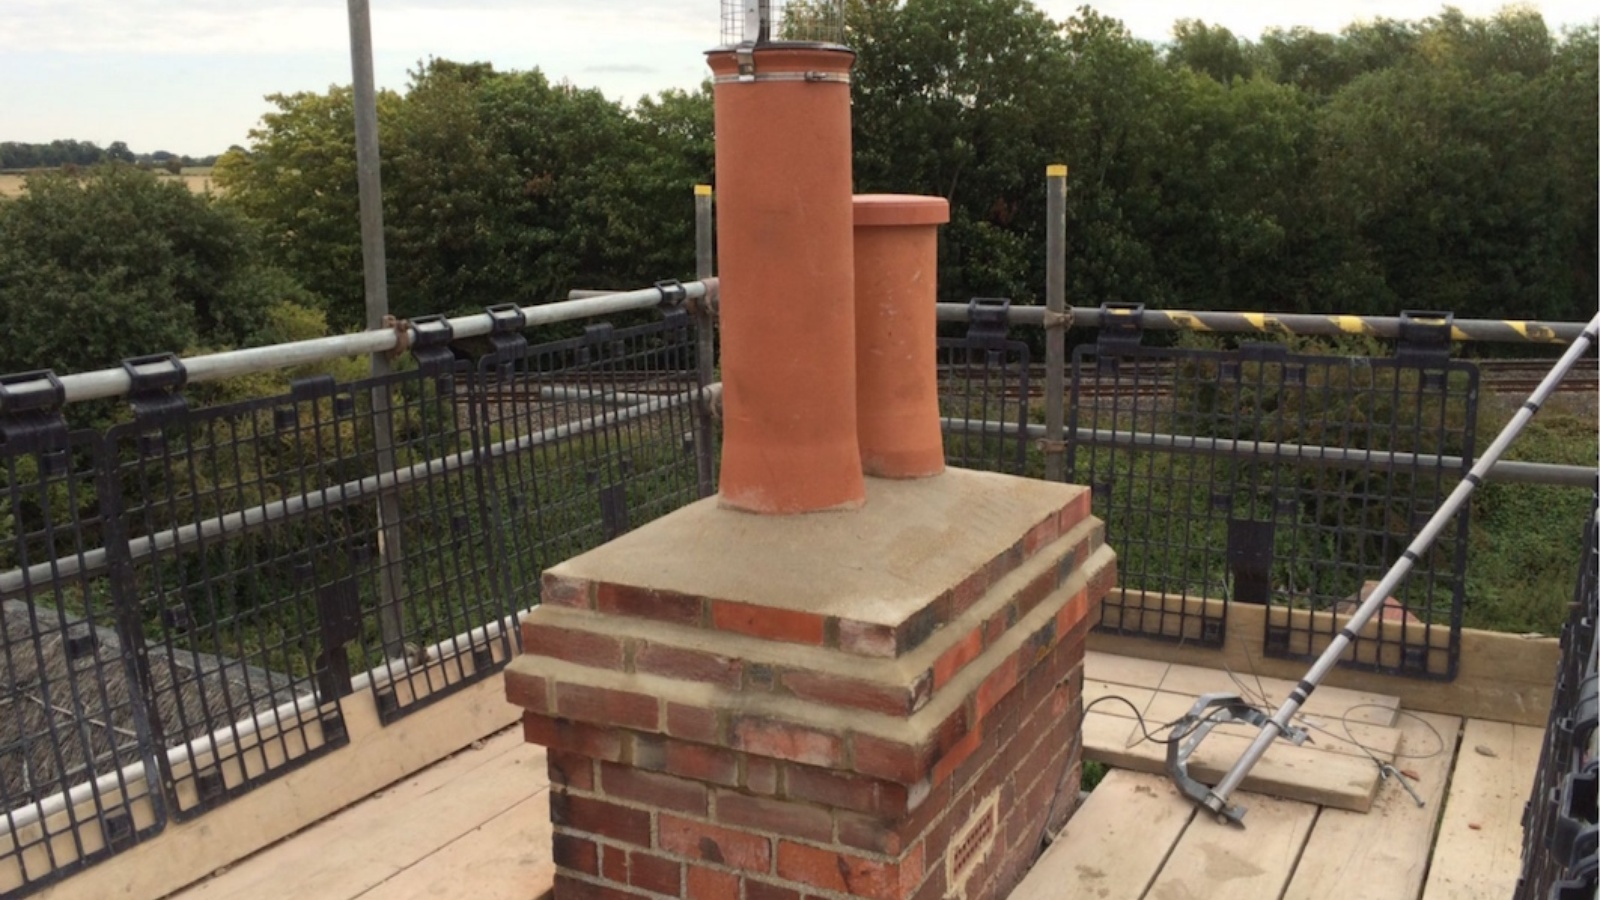 A newly extended chimney stack to a thatched cottage with one capped redundant chimney and one open to the wood burner below.